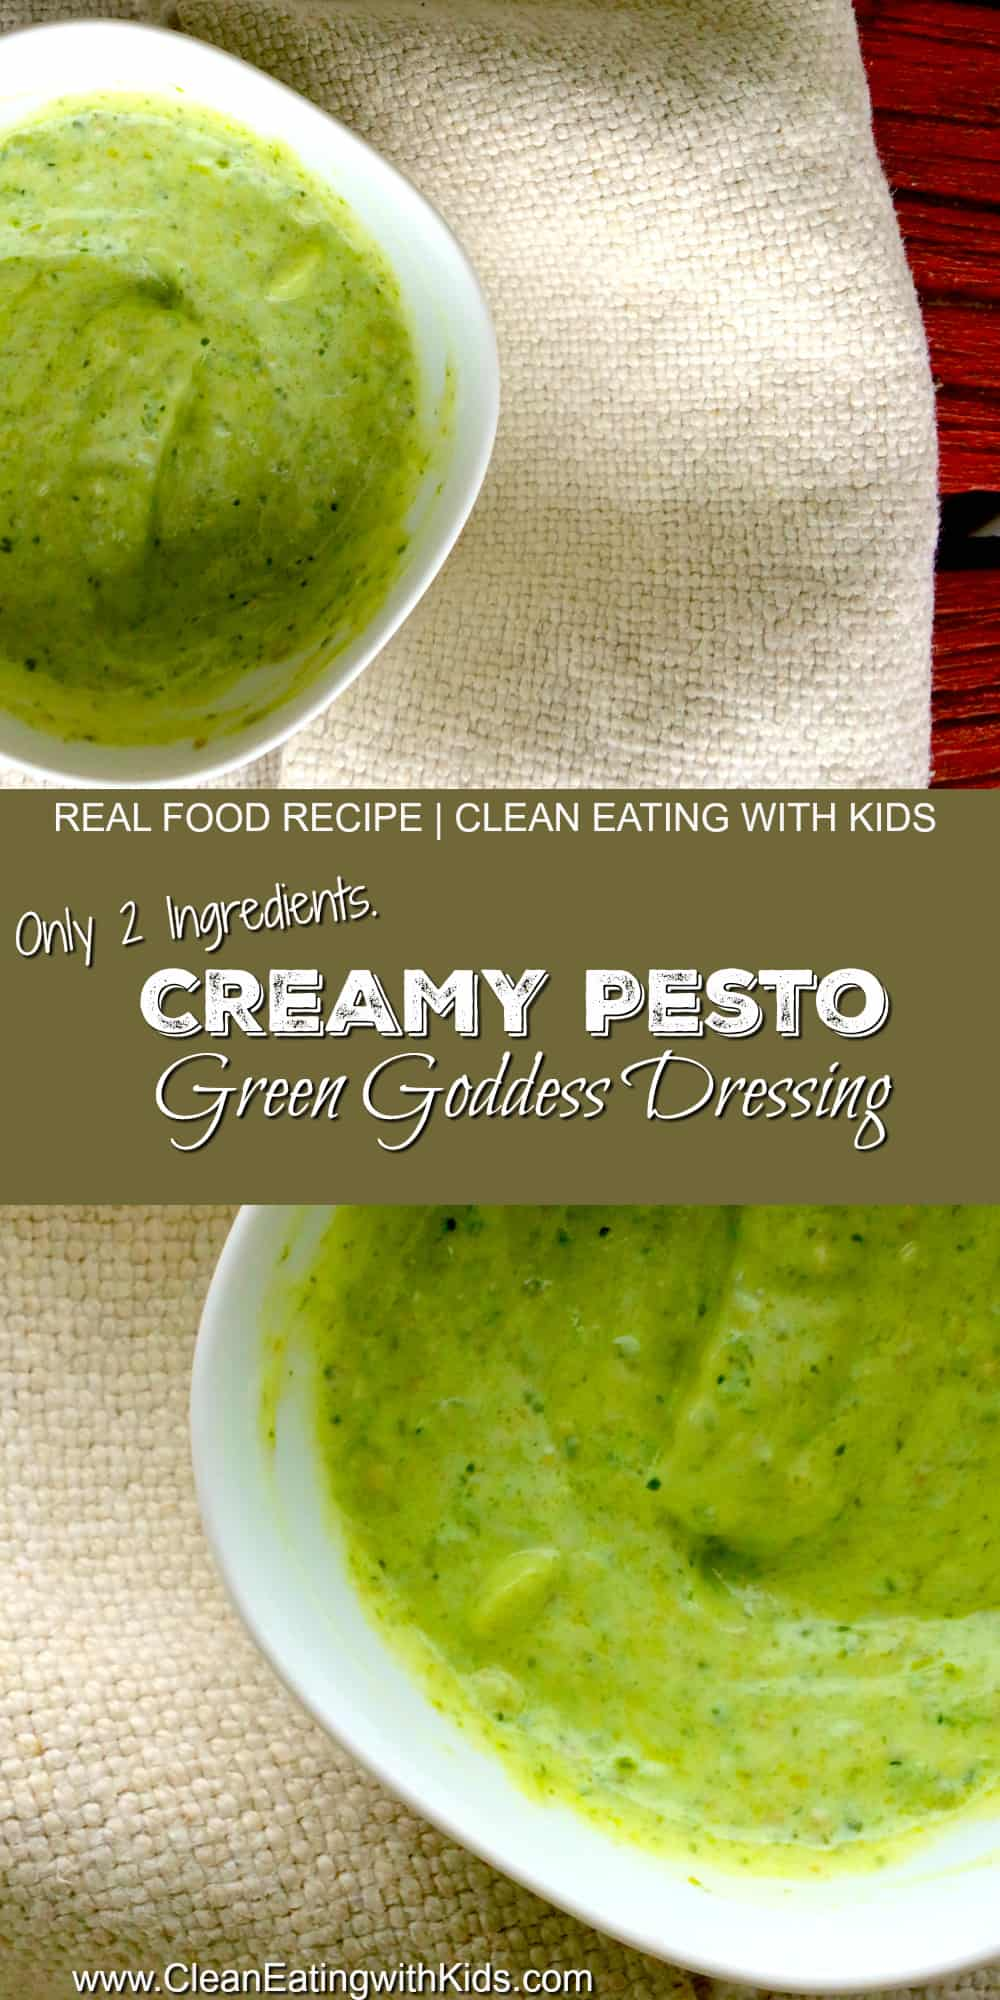 creamy pesto dressing to use in pasta, salad, dipping sauce or topping for baked potato!